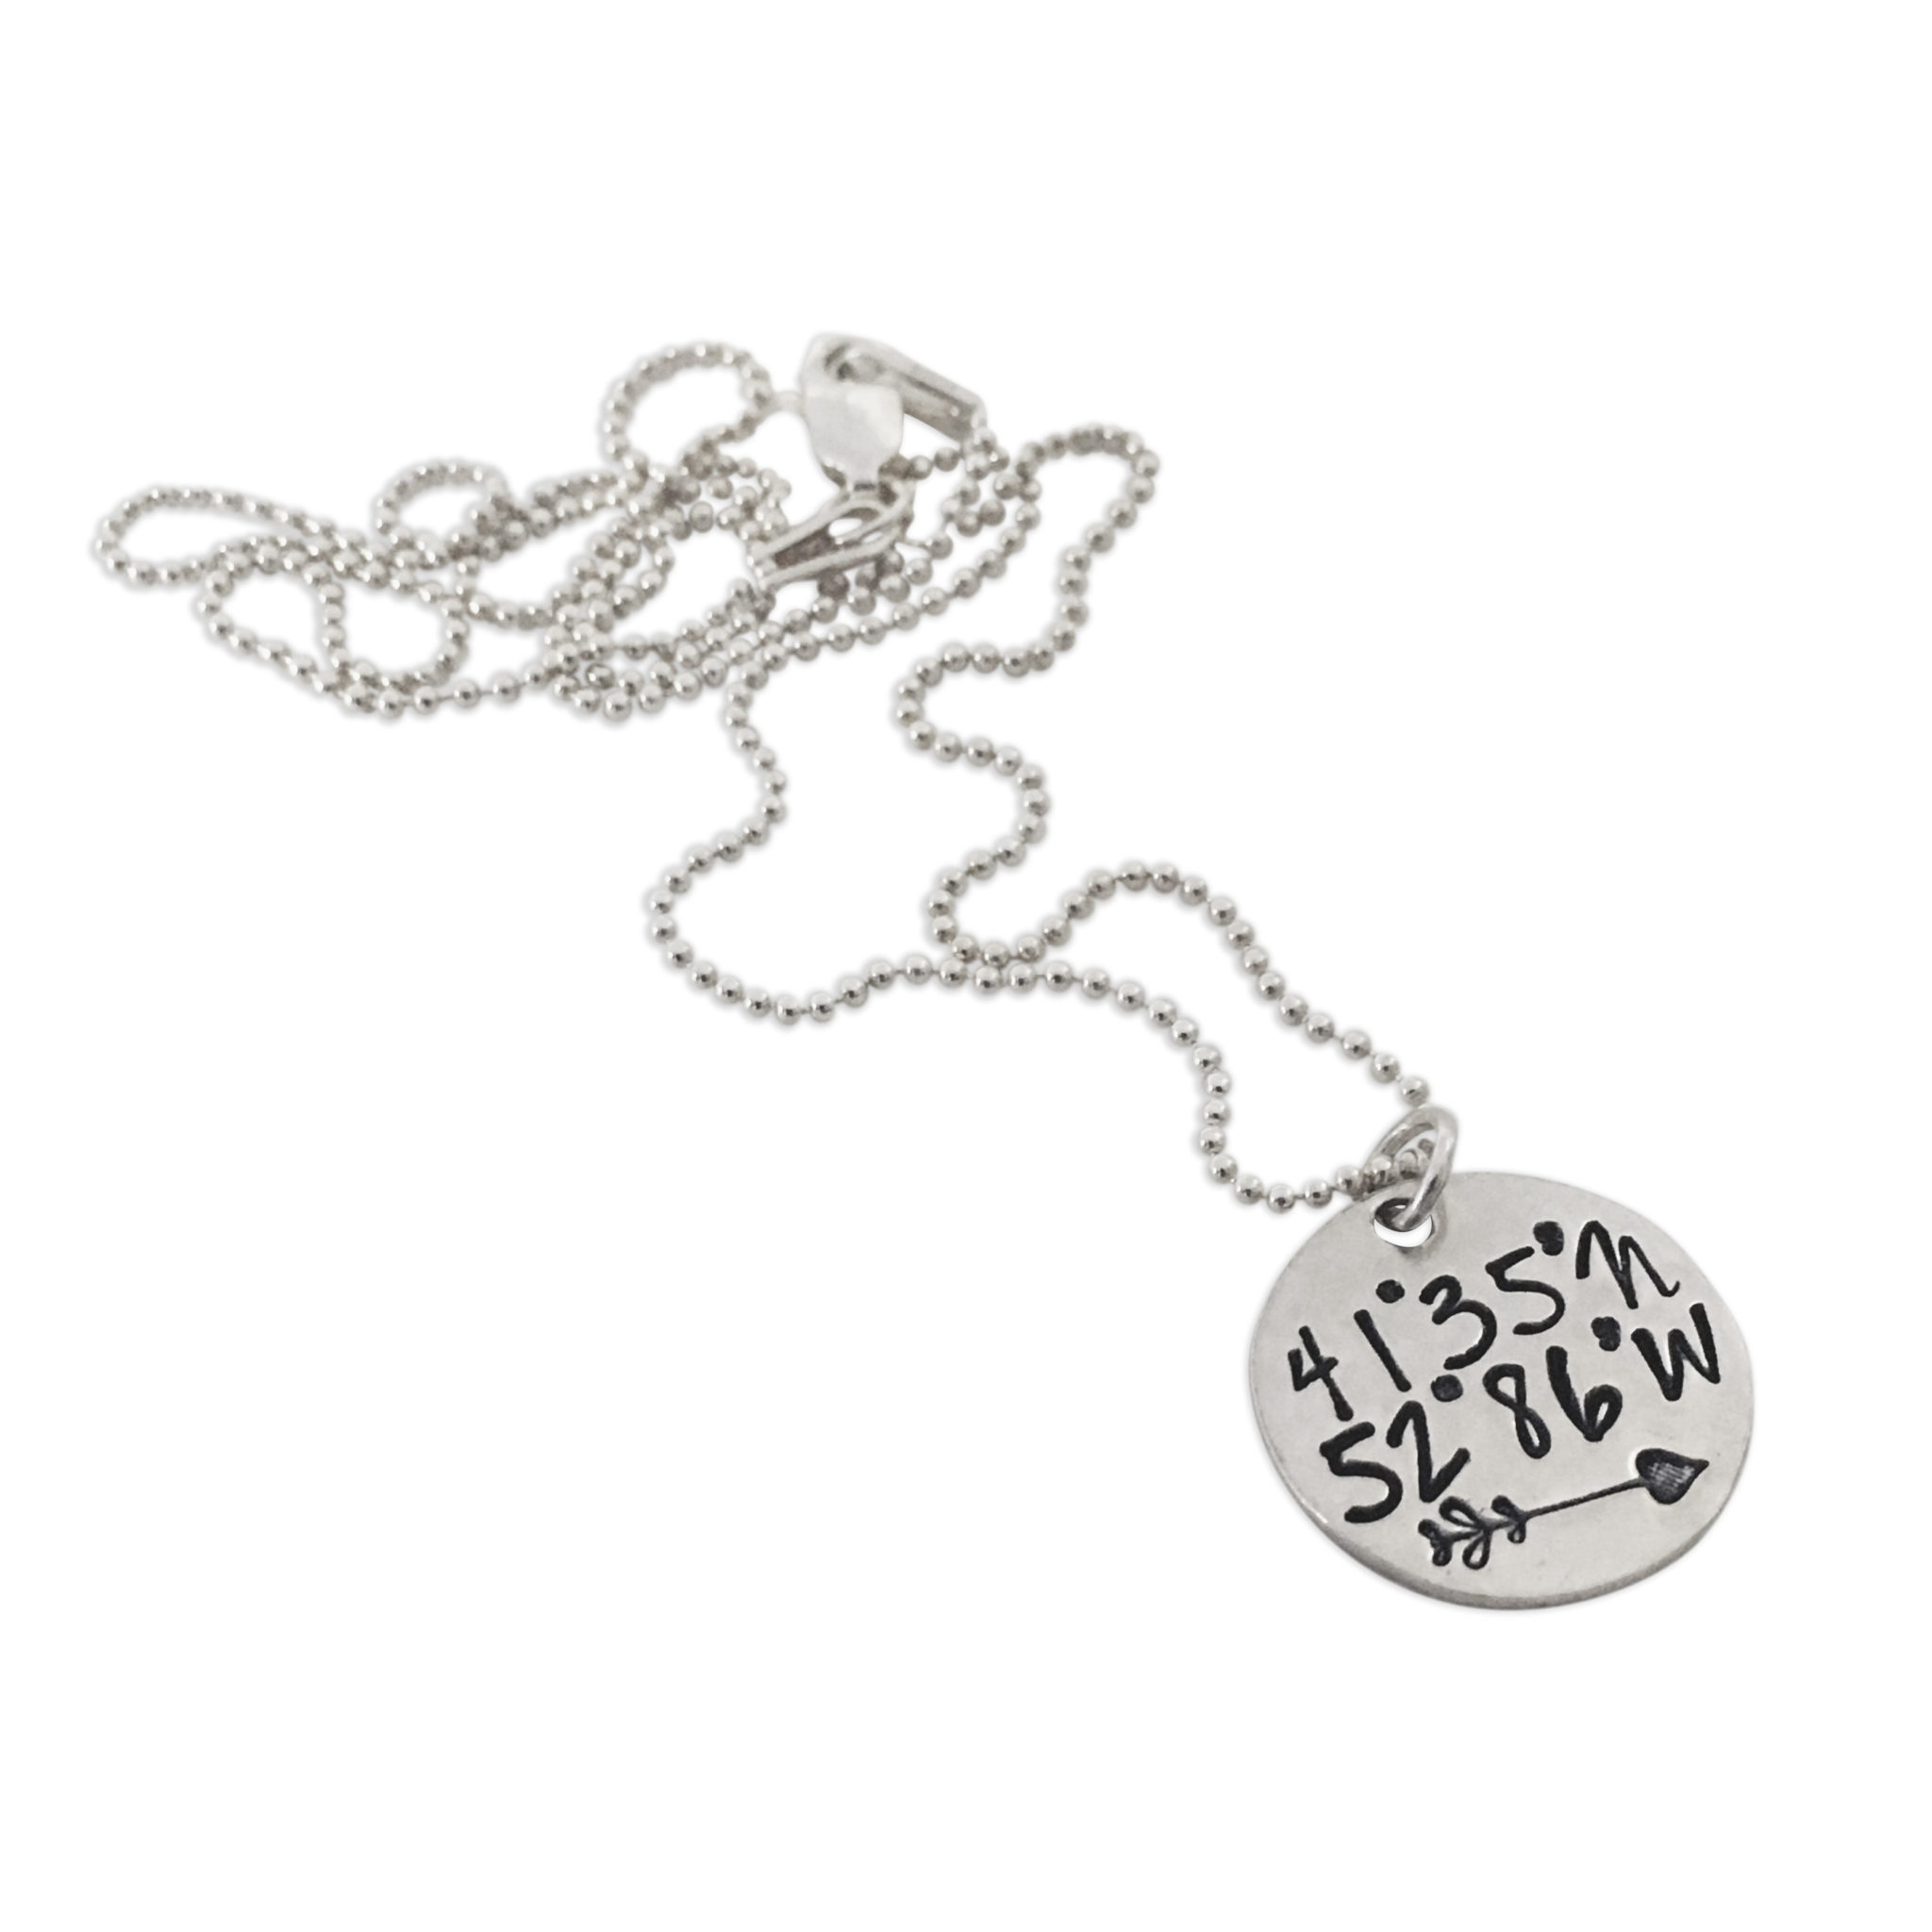 mystic rose soul product mini coordinate dog tag necklace sterling